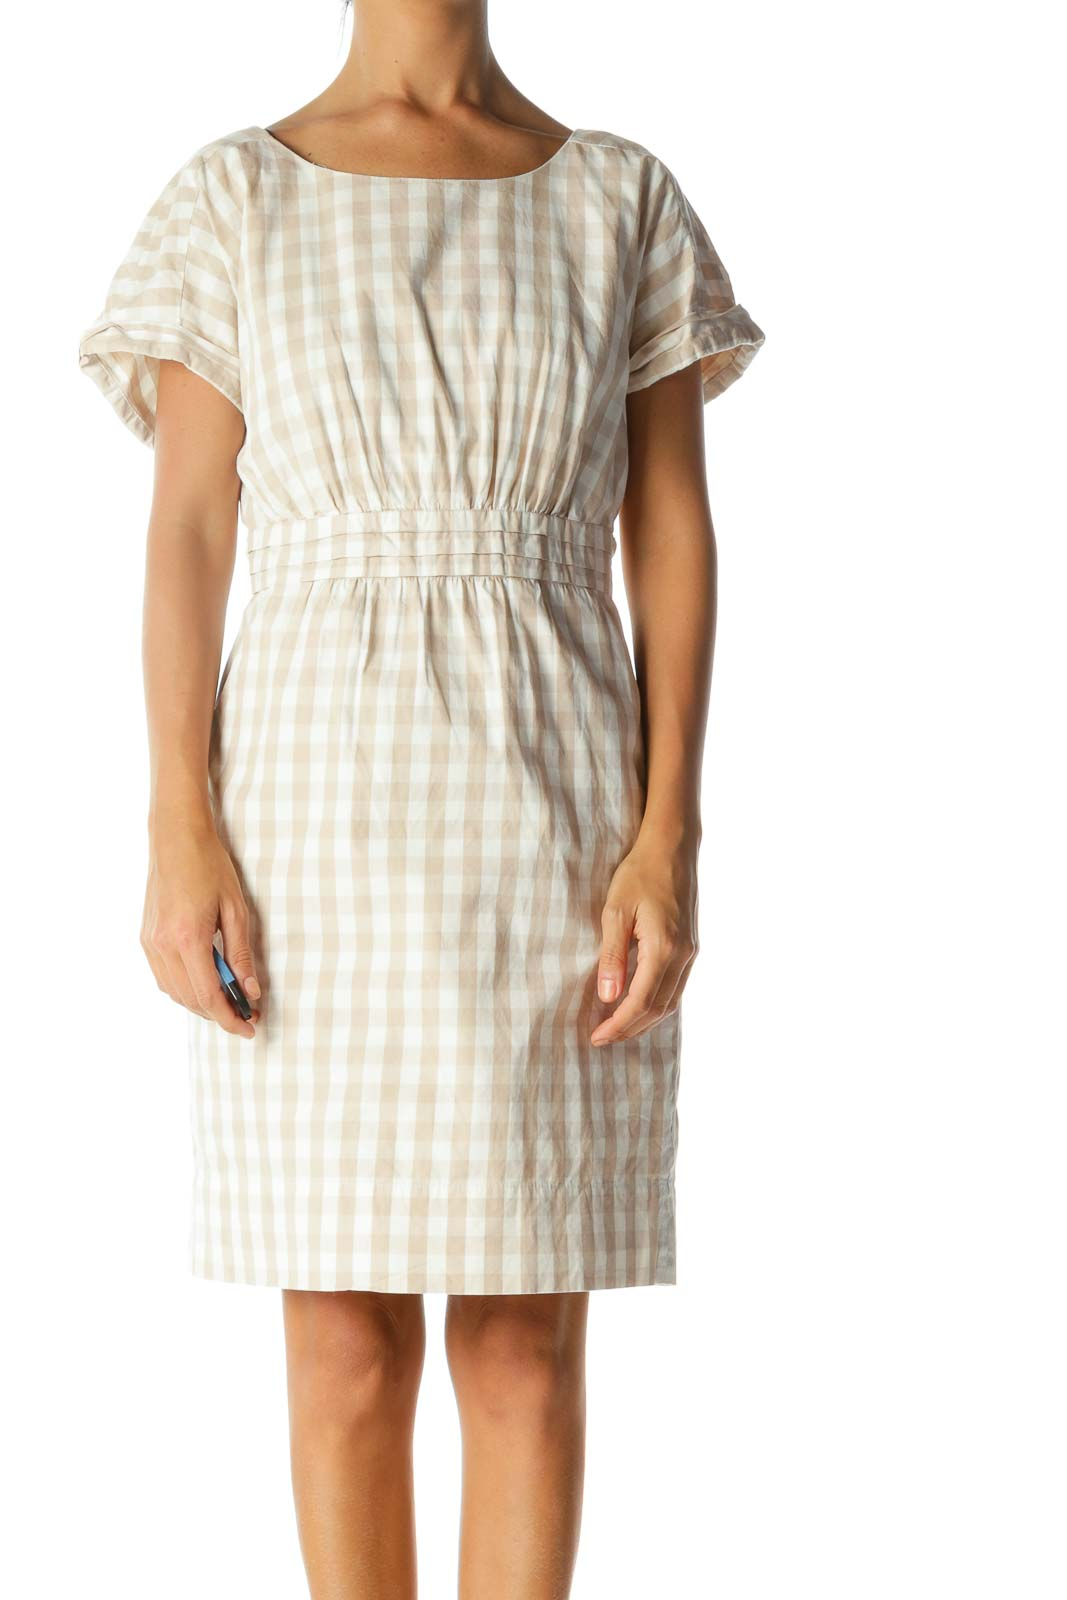 Beige Cream Gingham Short Sleeve Pleated Pocketed Dress Front